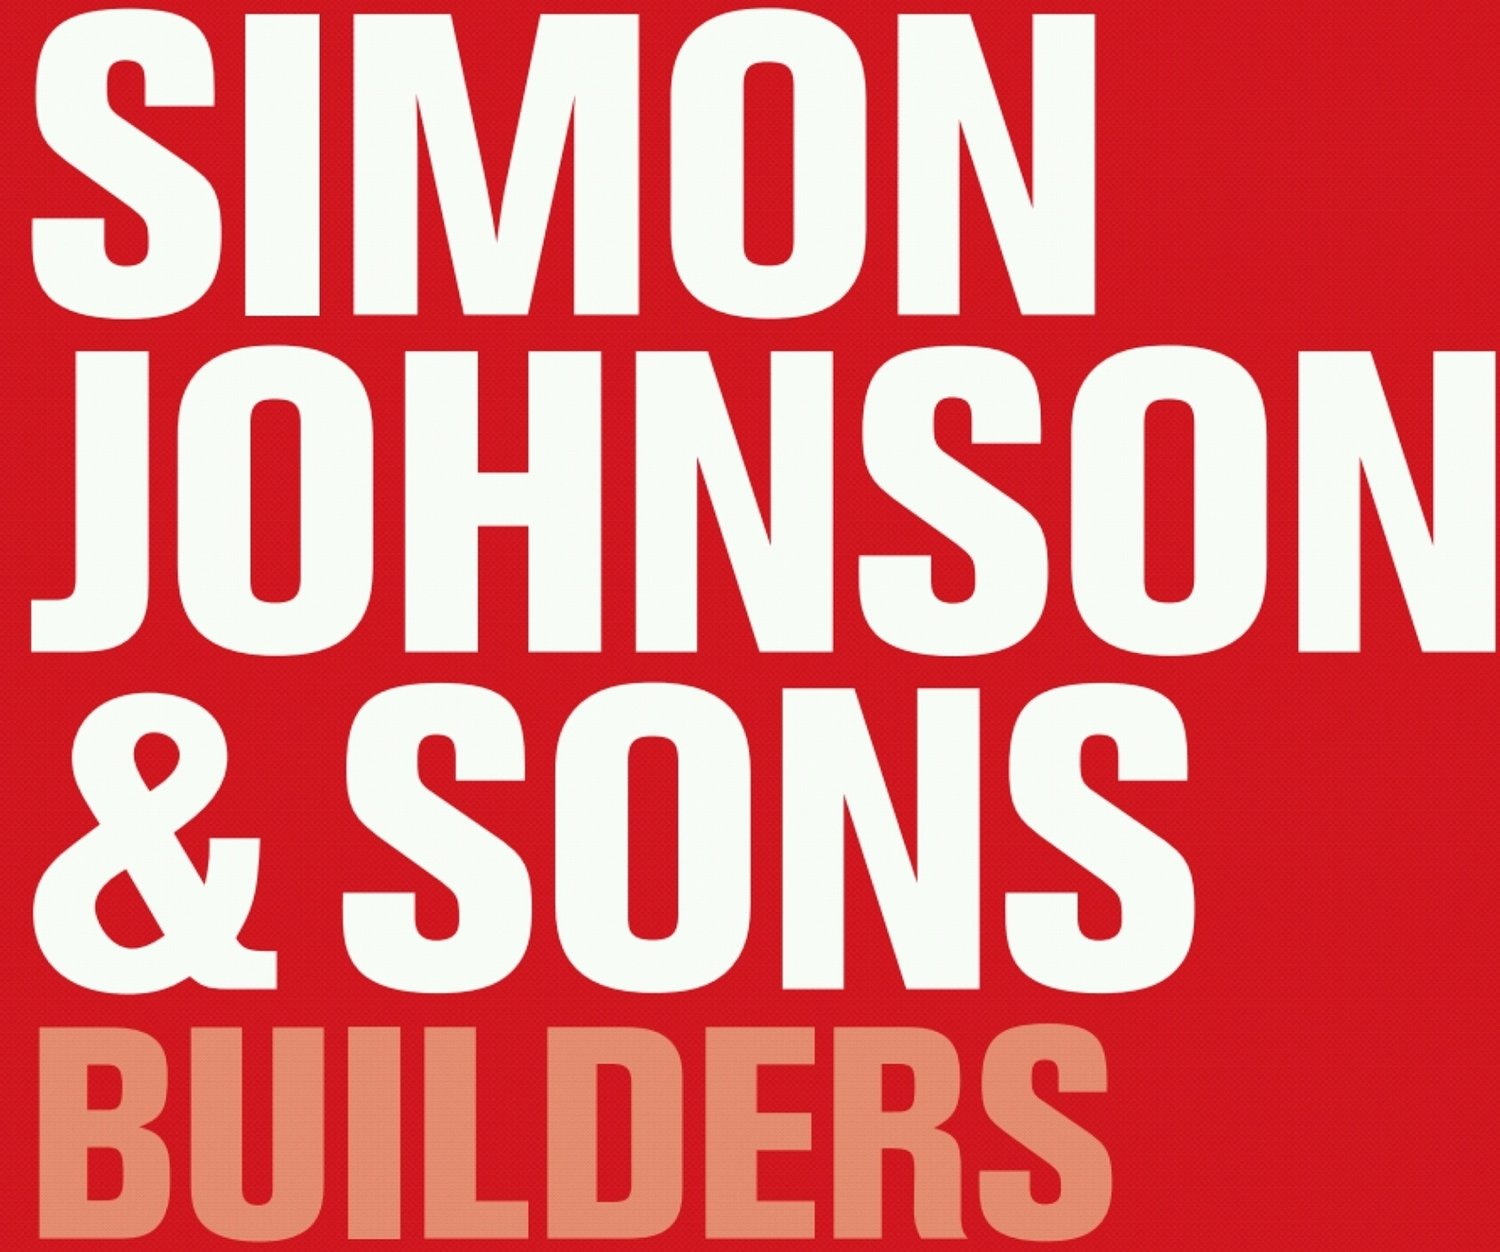 S Johnson & sons Builders